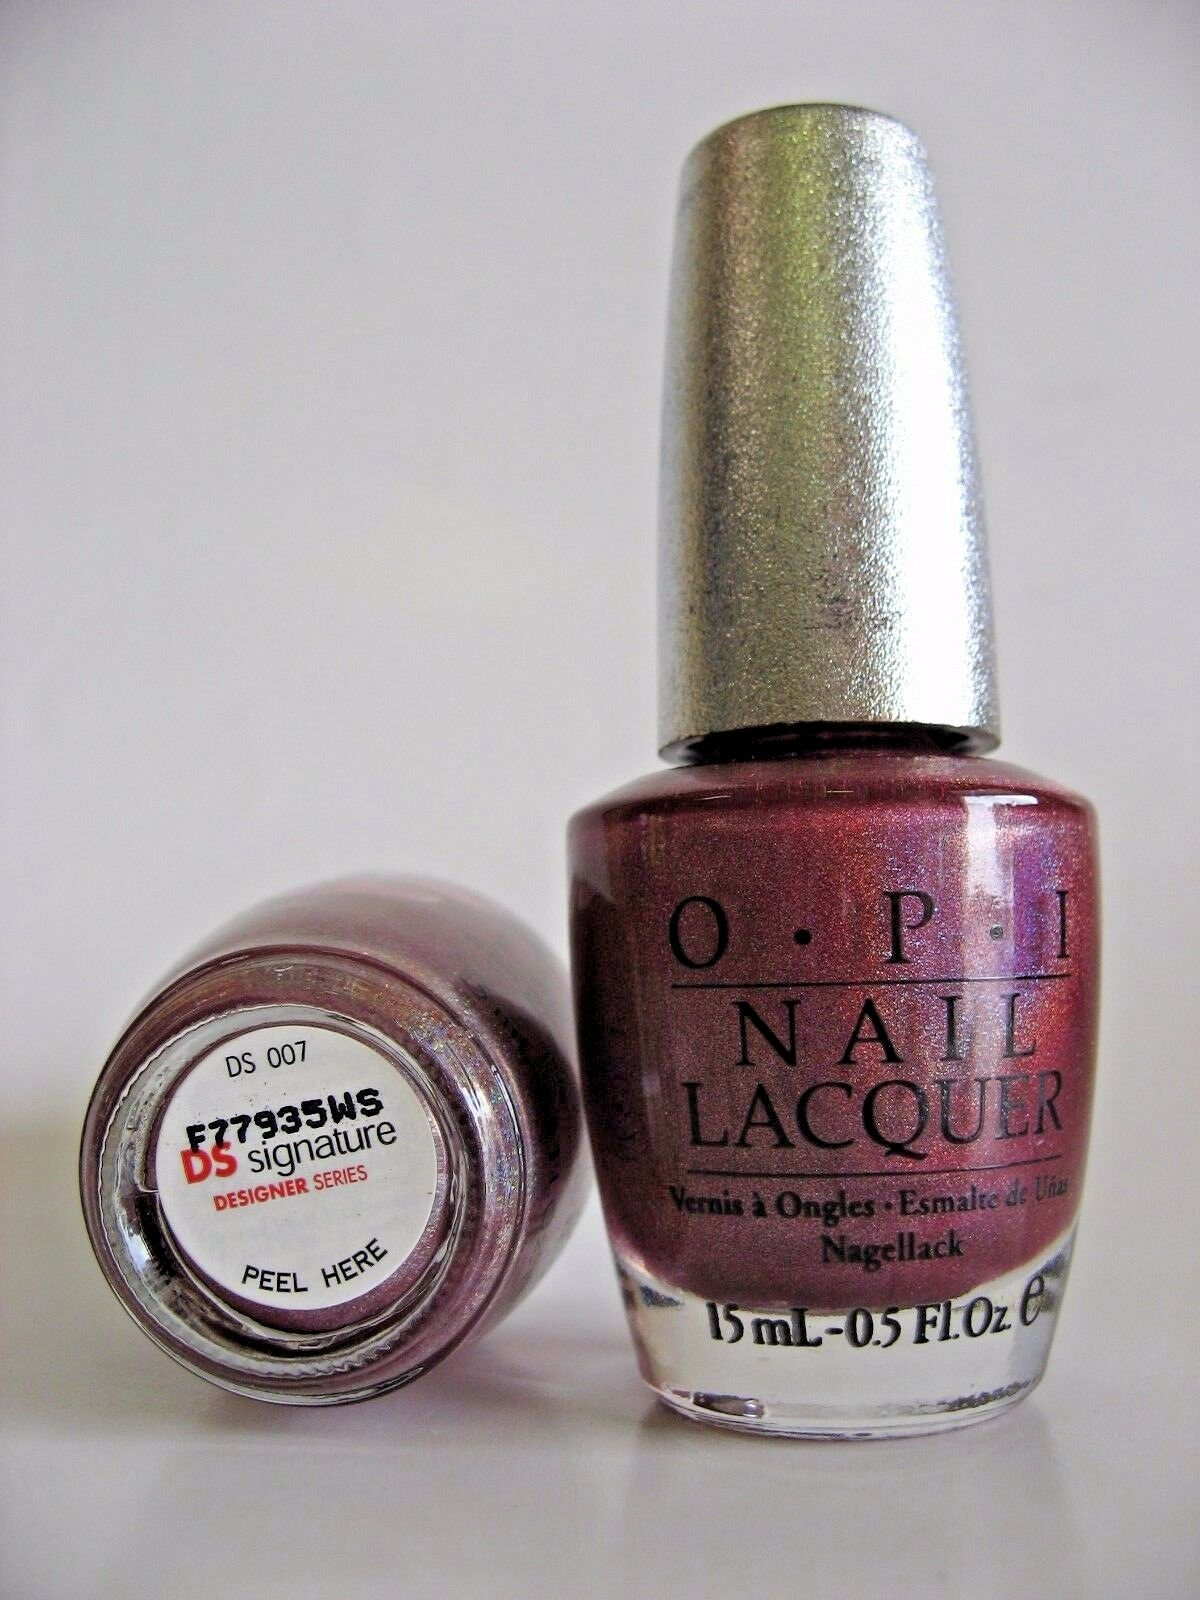 Opi opi nail polish lacquer designer series signature ds 007 picture 2 of 2 prinsesfo Image collections